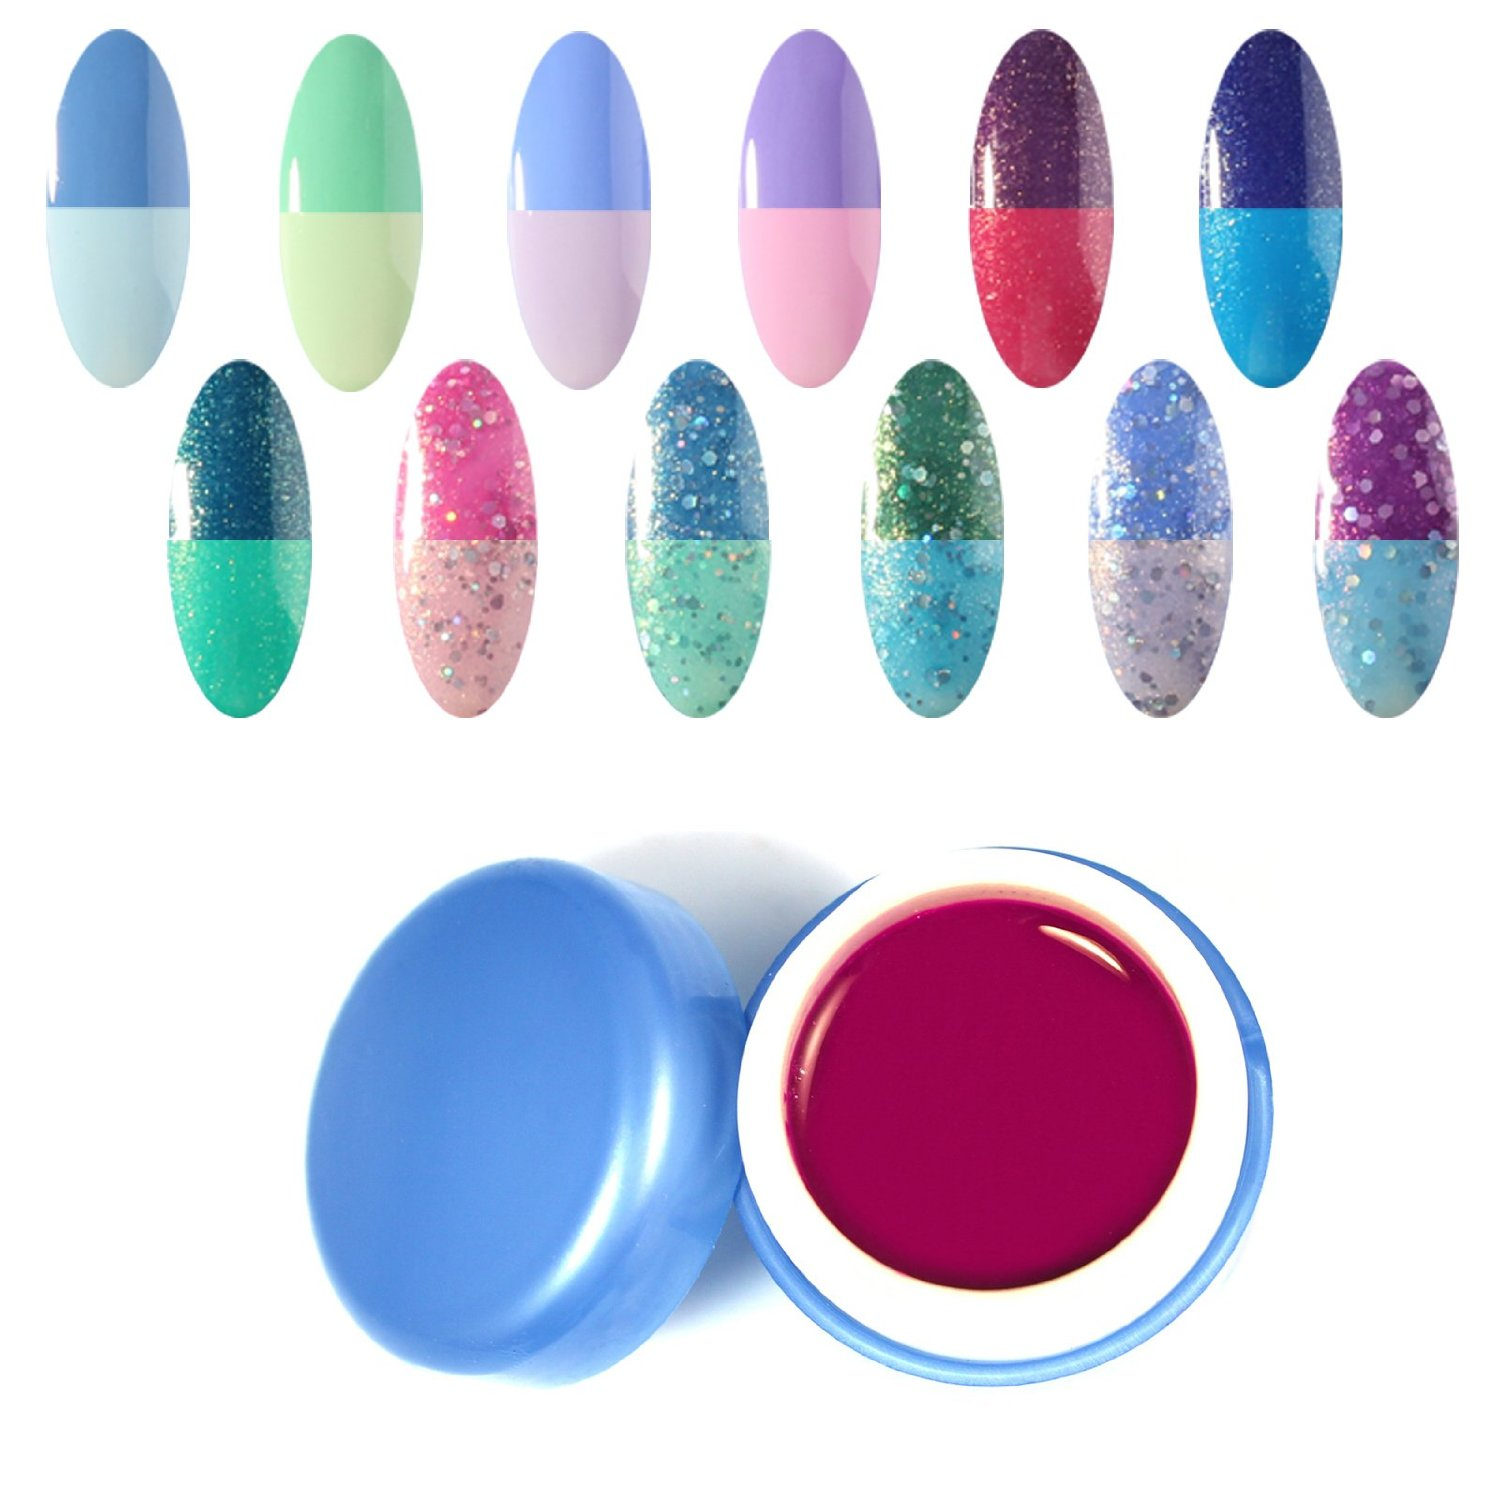 Perfect Summer New Best 12pcs 6ml Chameleon Temperature Change Colors Nail Lacquers Varnish Soak Off Led UV Gel Polish Mood Changing Salon Starter Kits #32